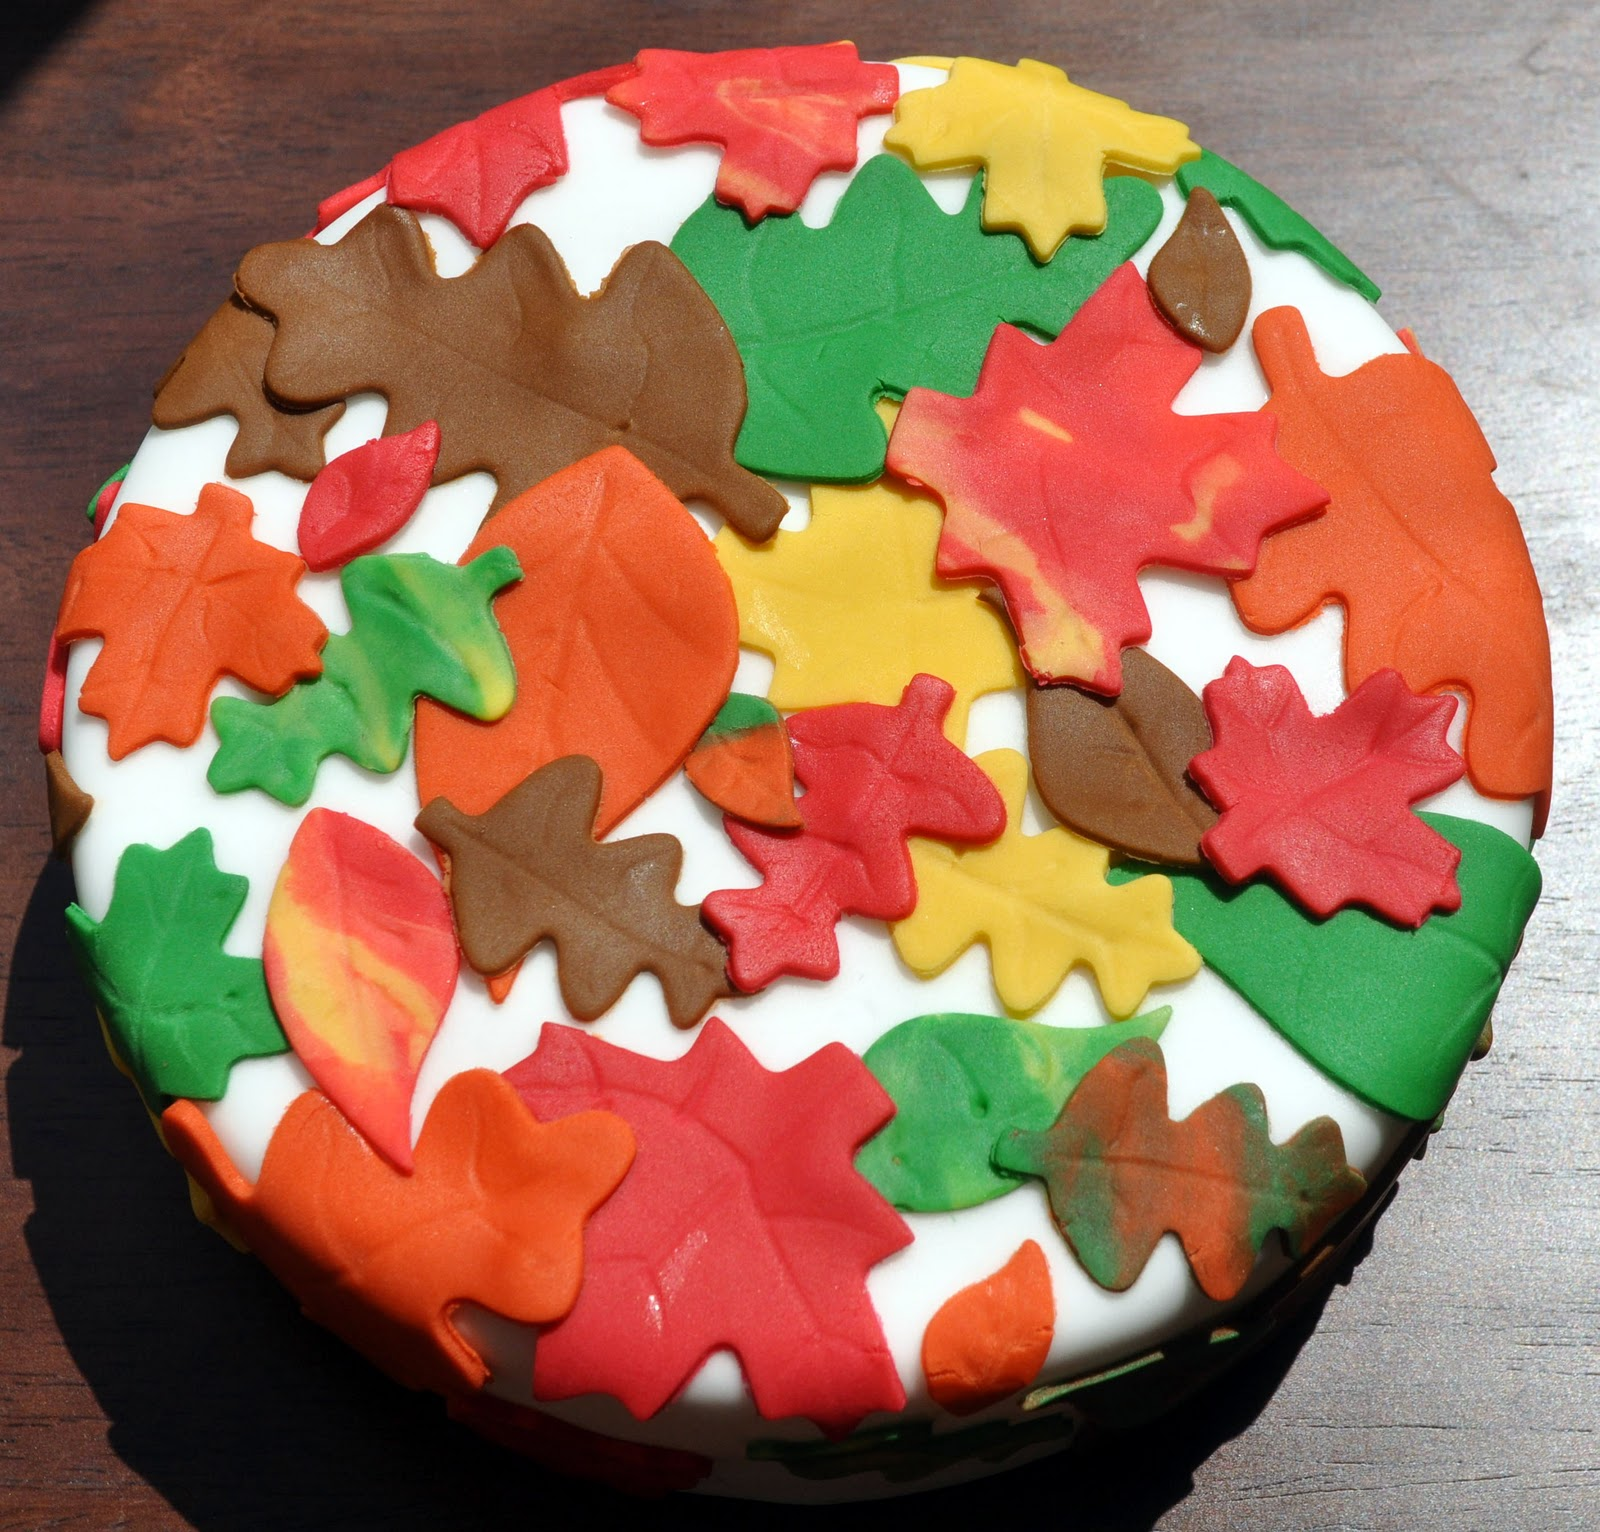 Cake Decorating How To Make Leaves : Beki Cook s Cake Blog: Fall Leaves Fondant Classes